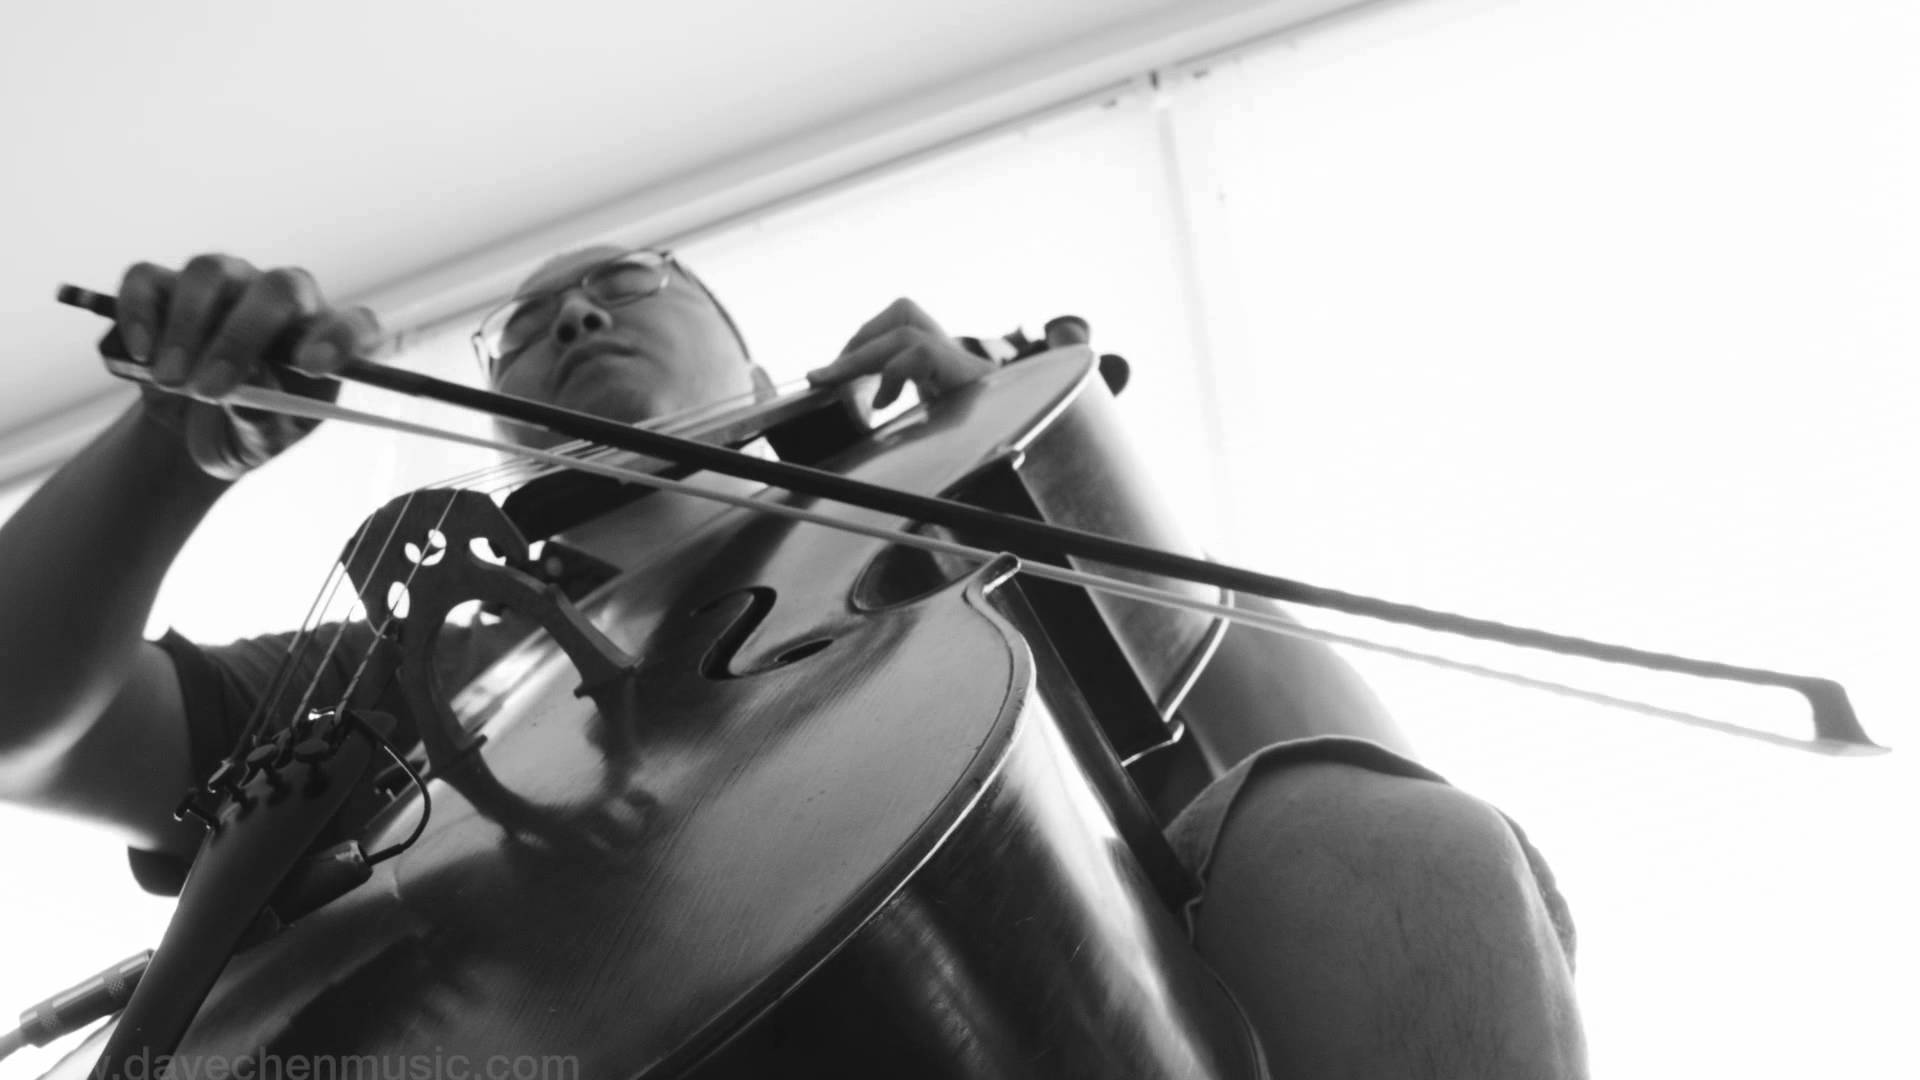 'With or Without You' by U2 Played Solo on a Looped Cello